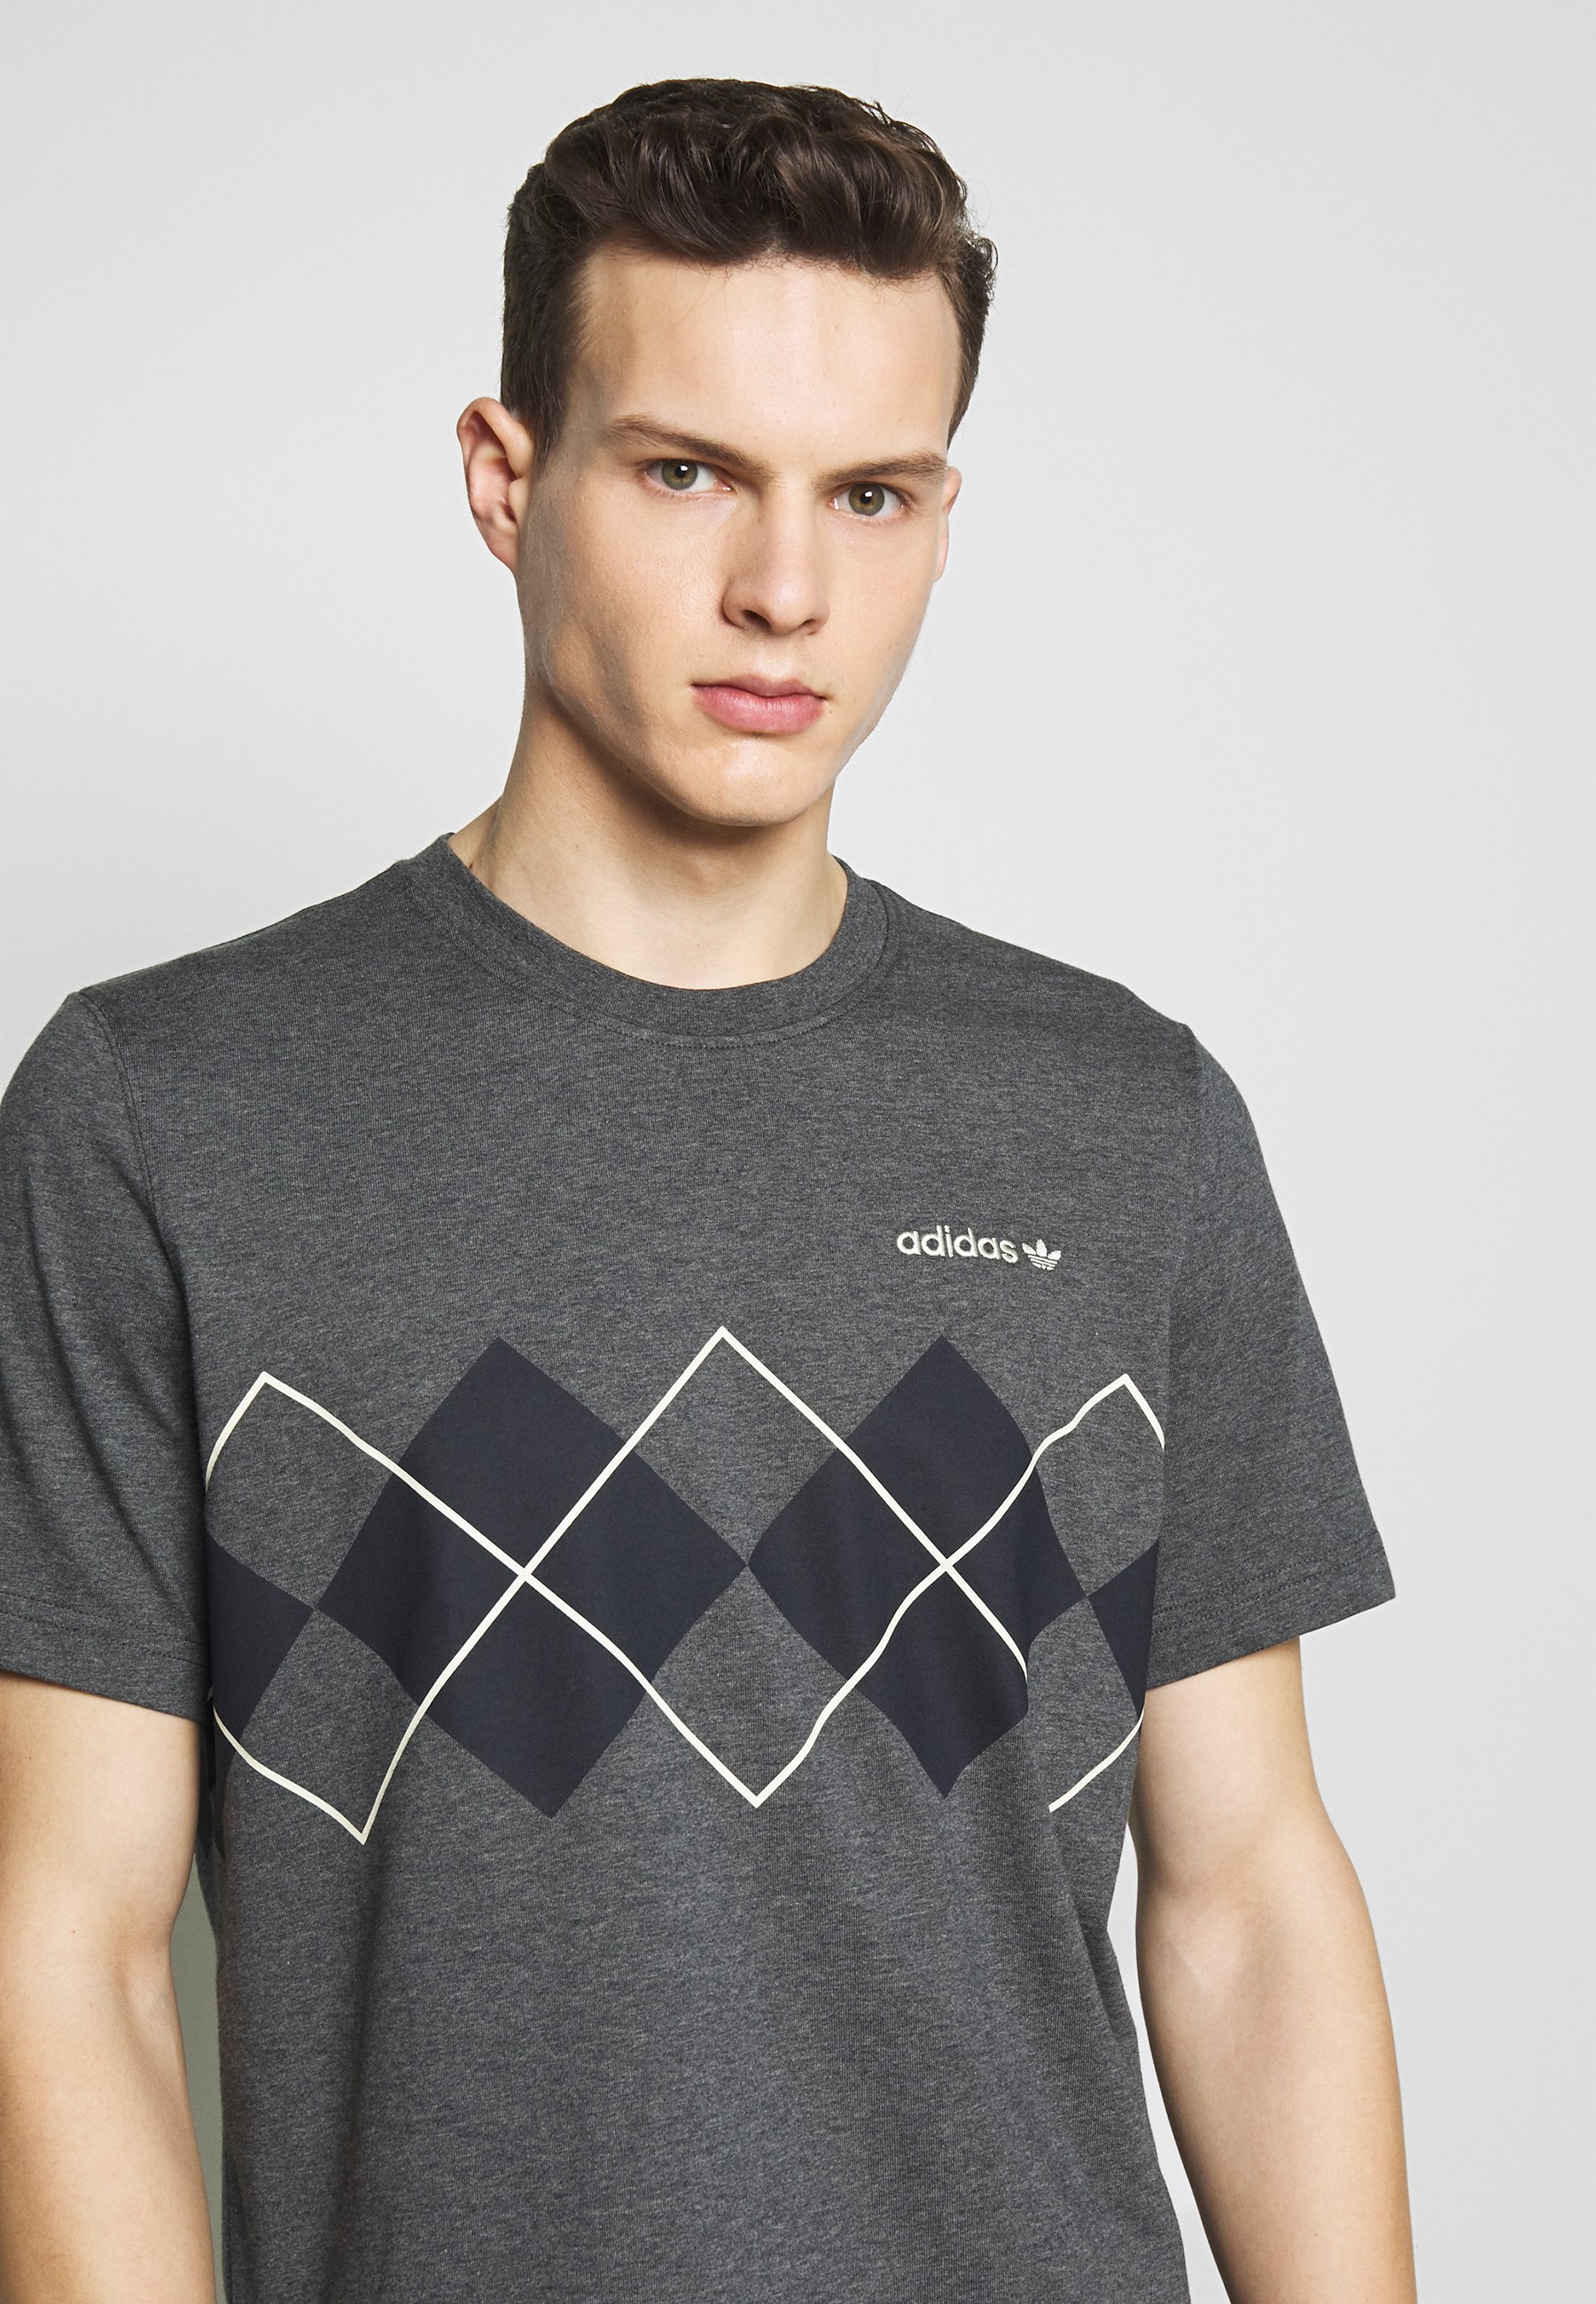 adidas Originals ARGYLE TEE SHORT SLEEVE GRAPHIC TEE T